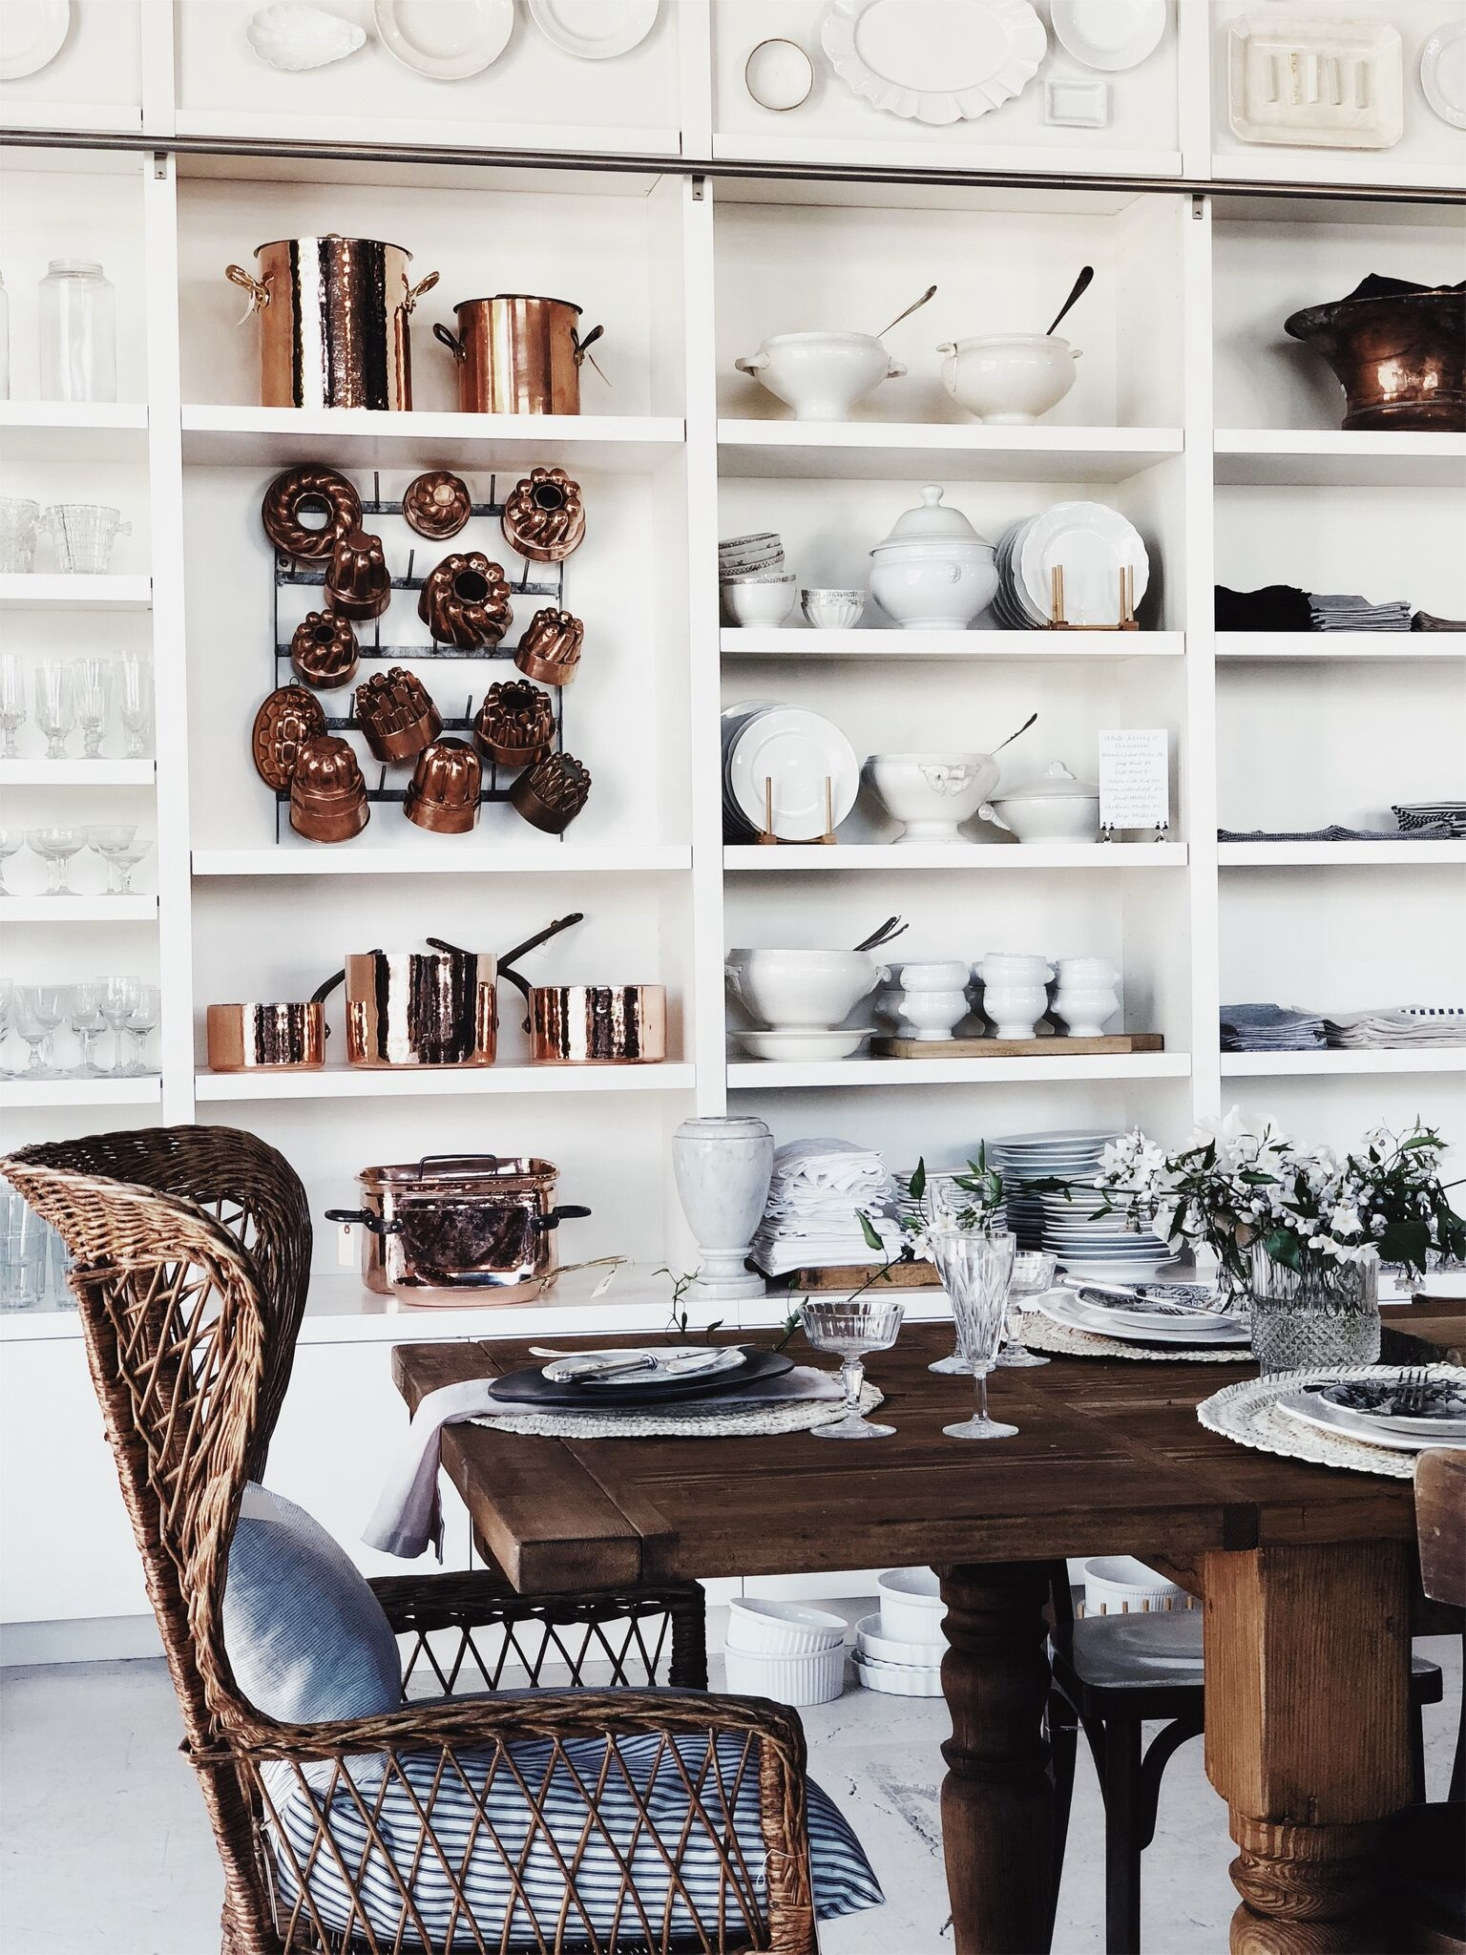 Elsie Green specializes in classic white French crockery.